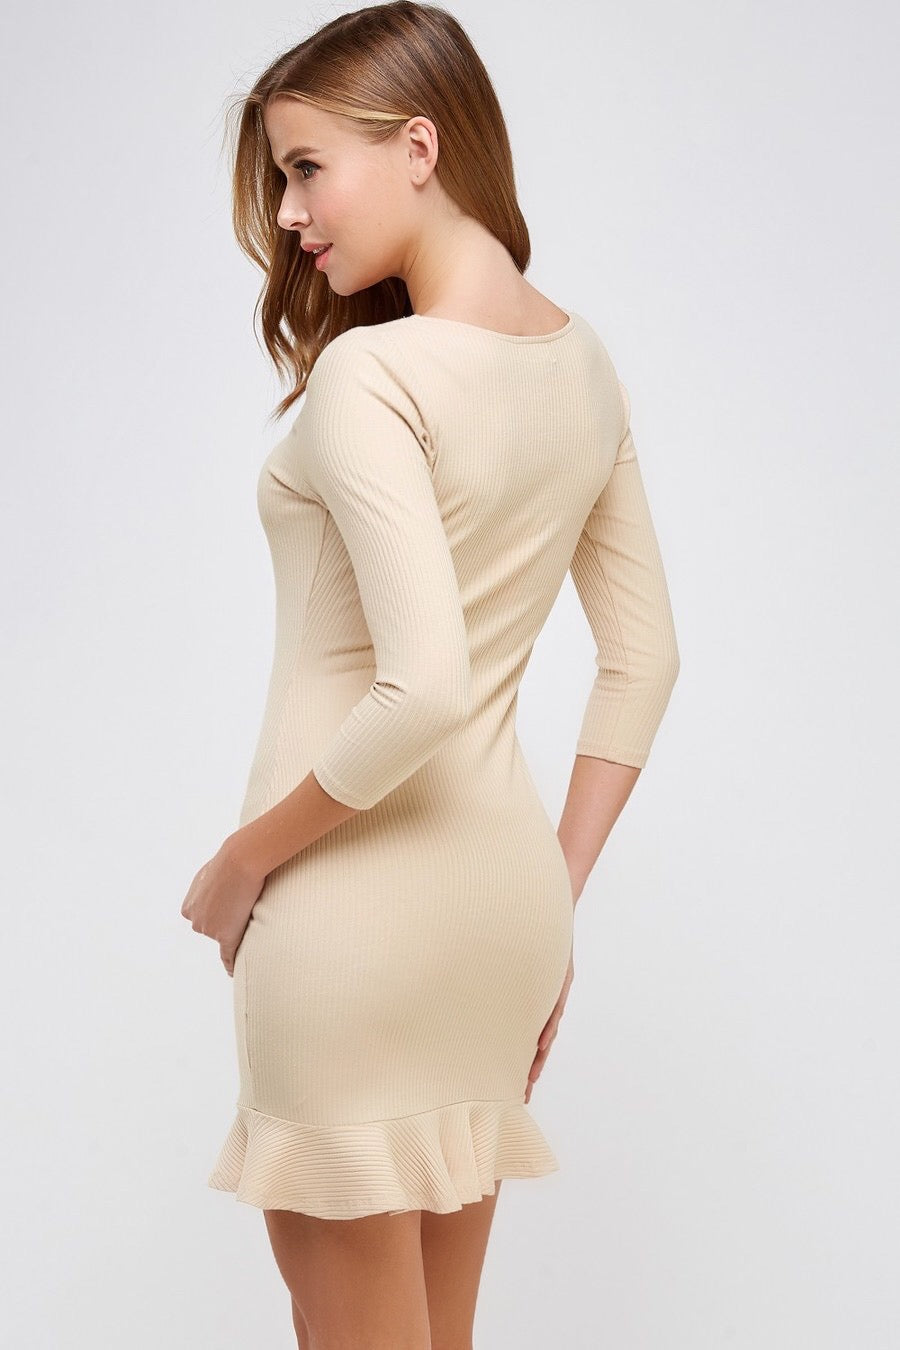 Square Neck 3/4 Sleeve Rib Dress (Cream)